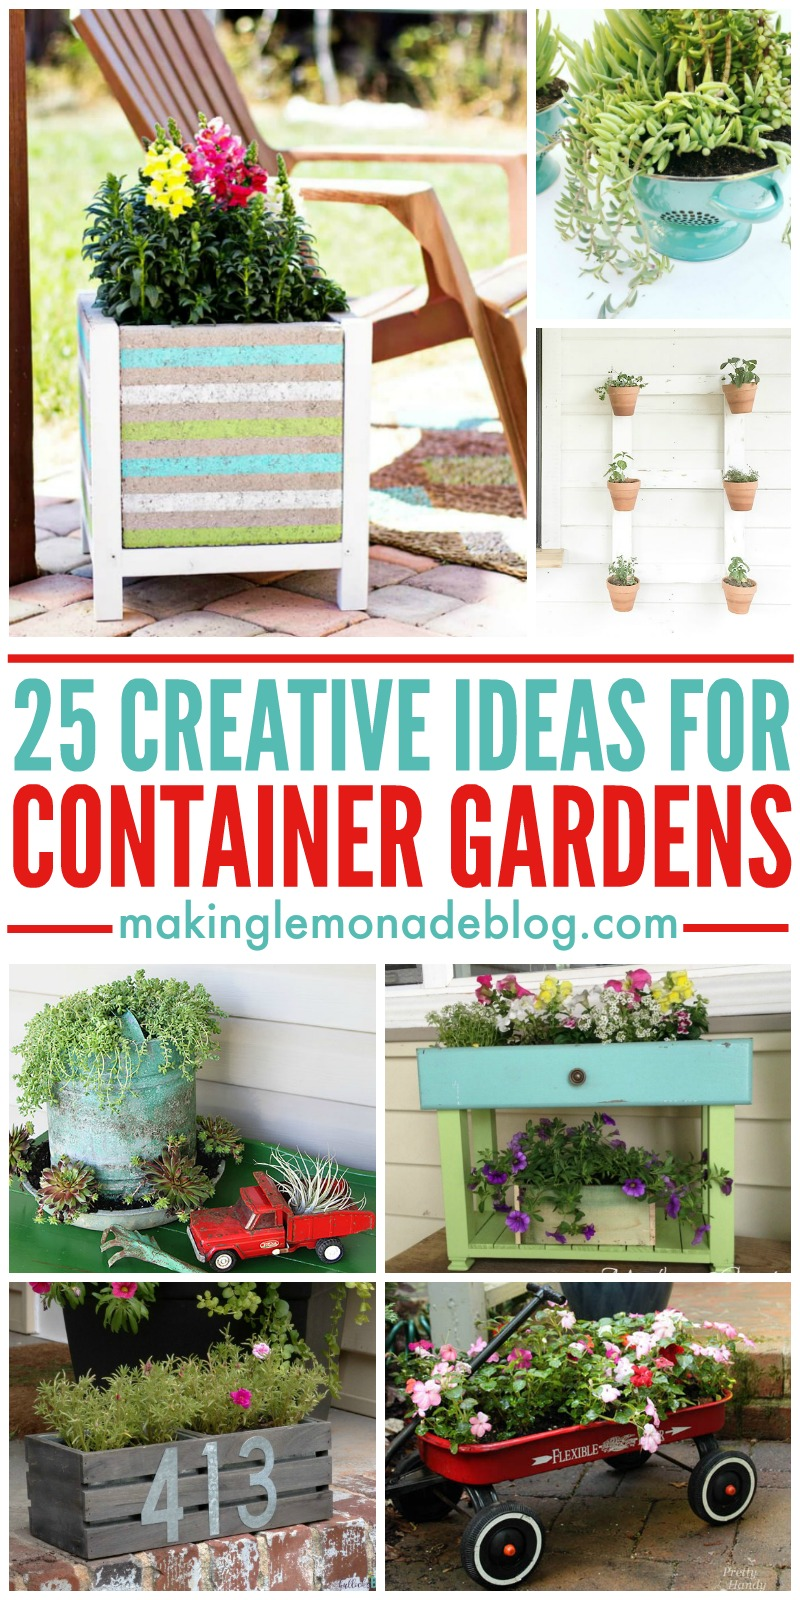 25 Creative Container Garden Ideas